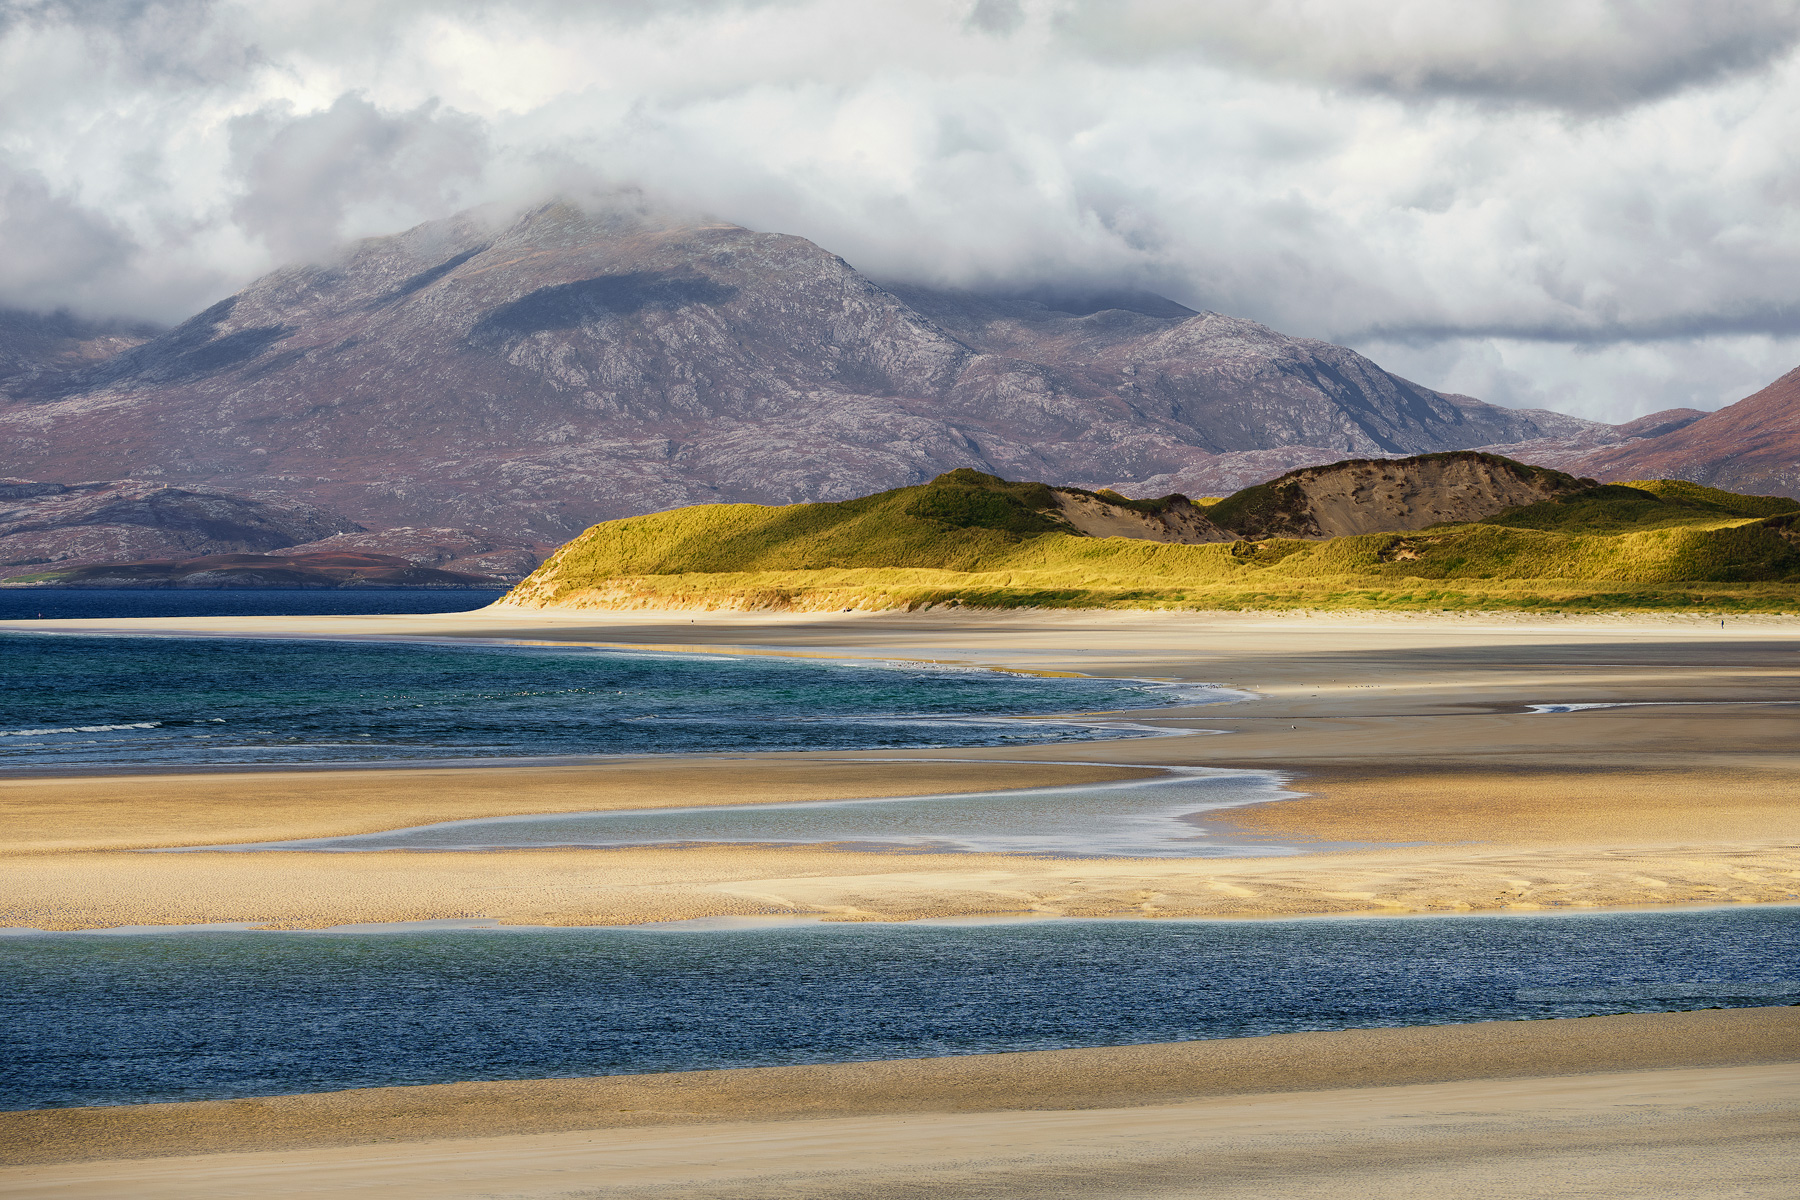 A long lens is used to compress the mountain backdrop of the Harris peaks and the multitude of lines formed by the rising tide...